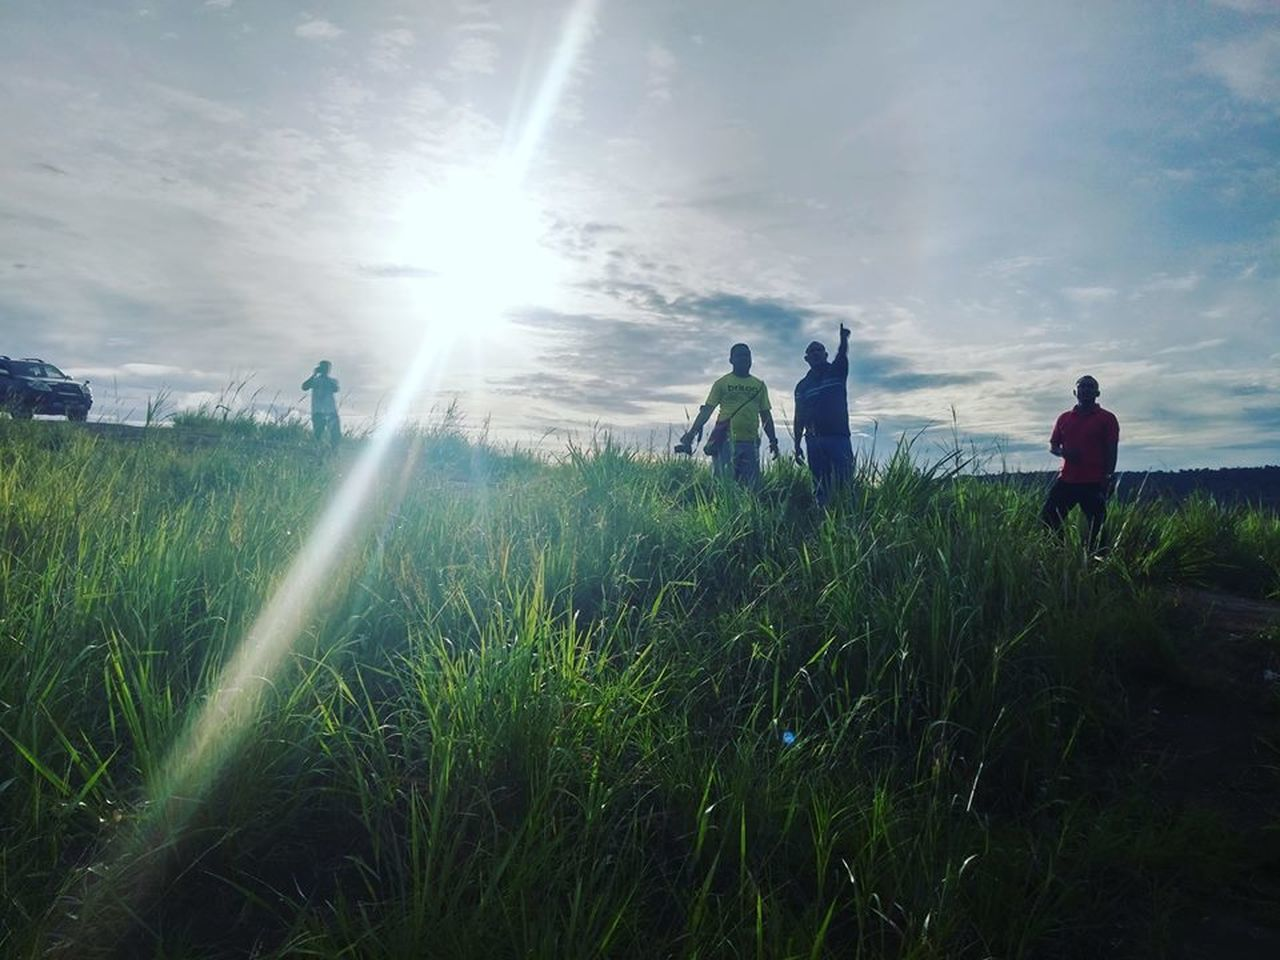 Day Field Grass Grassy Growth Hobbies Light Nature Outdoors Plant Togetherness Weekend Activities Q is for Quest Landscapes With WhiteWall Telling Stories Differently Take Photos Human Meets Technology Original Experiences Feel The Journey Papua Indonesia  Adventure Club People Together